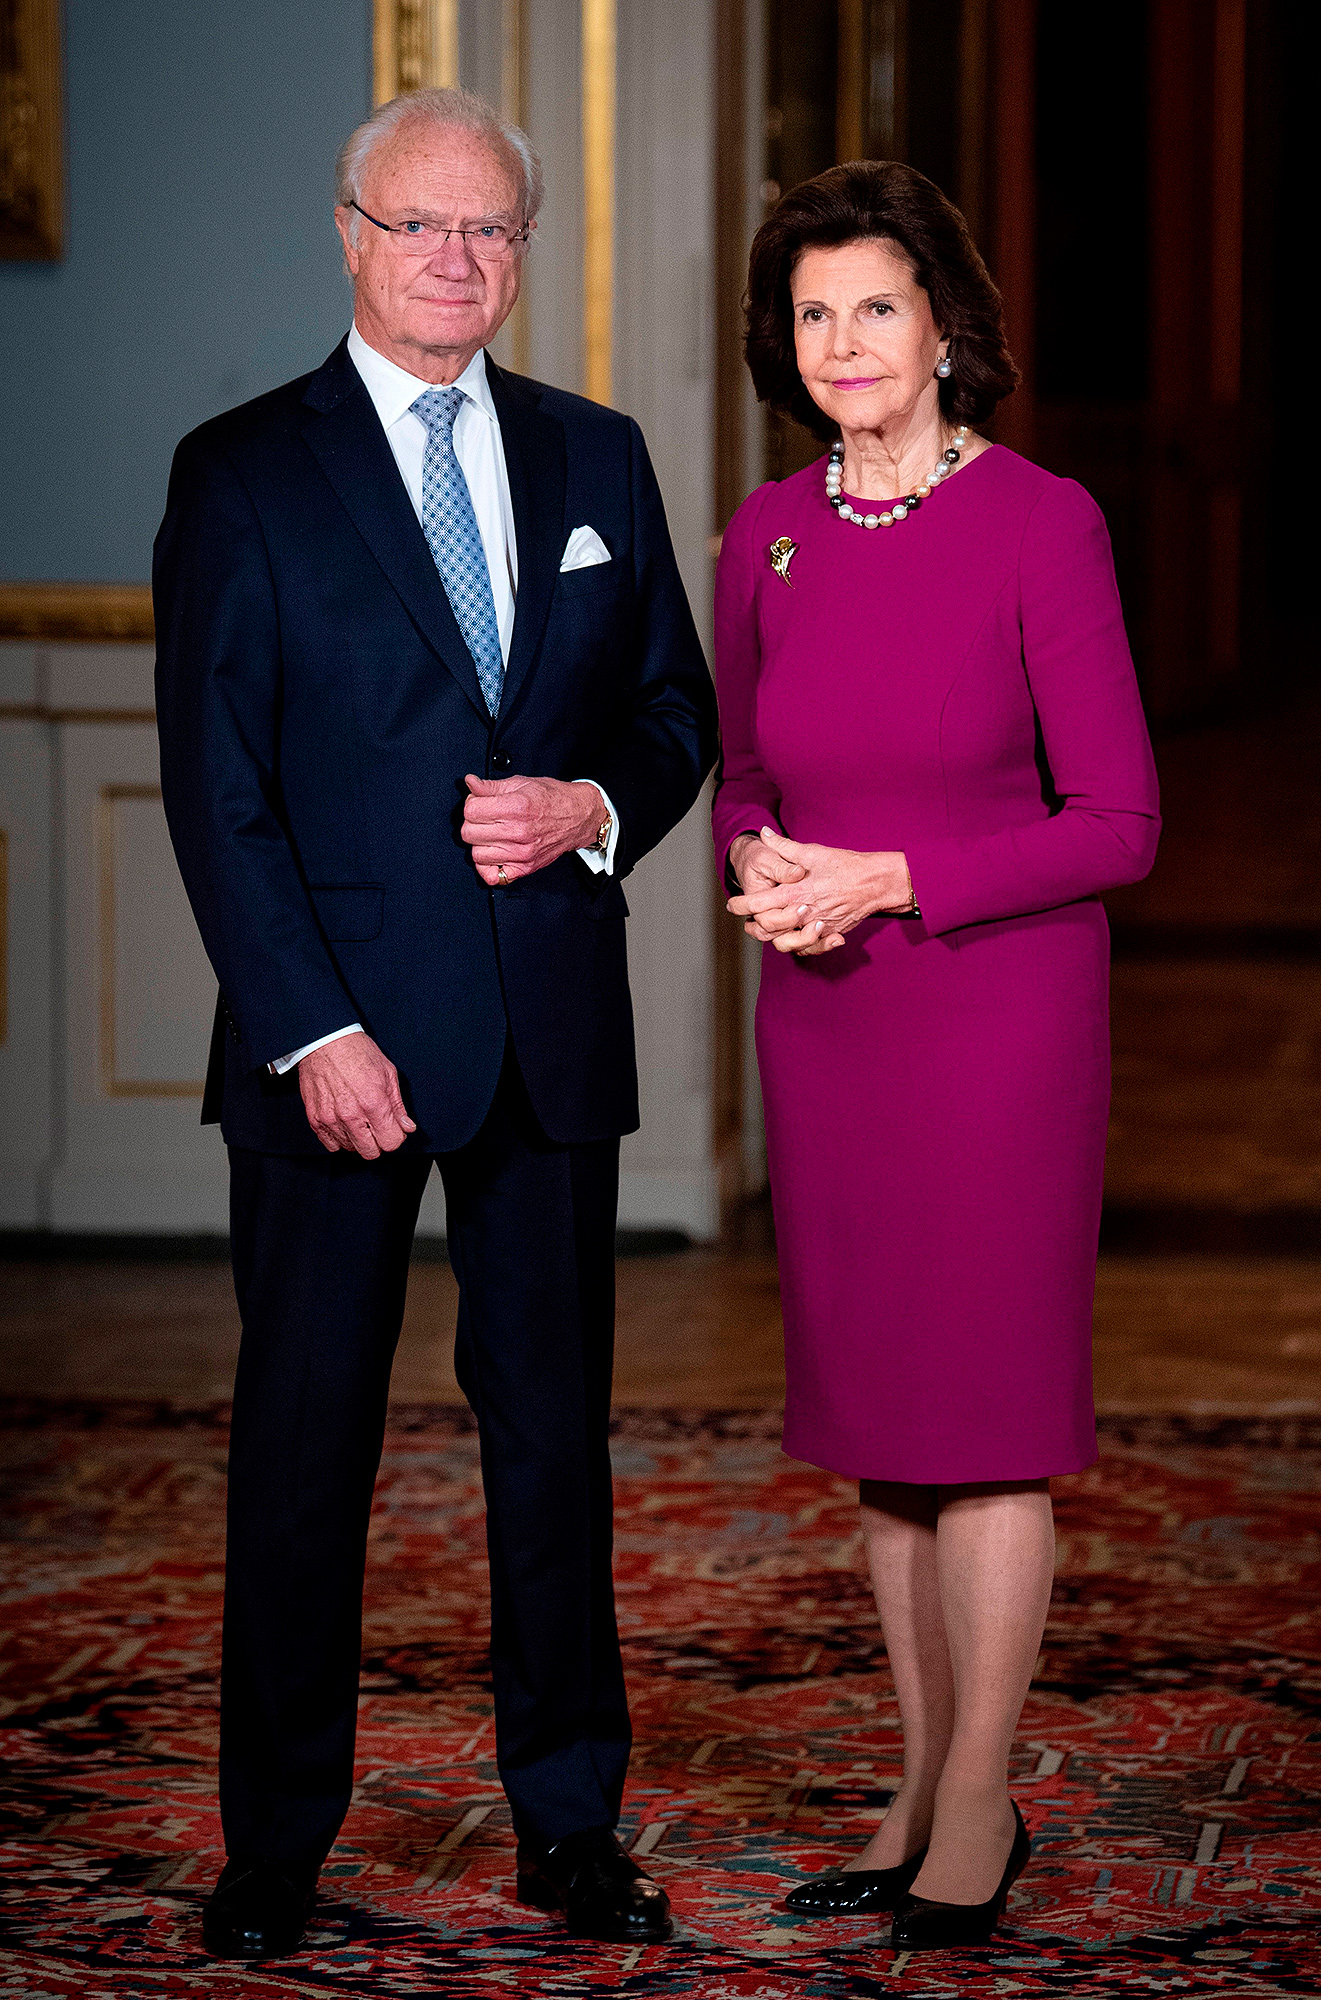 King Carl XVI Gustaf of Sweden and Queen Silvia of Sweden